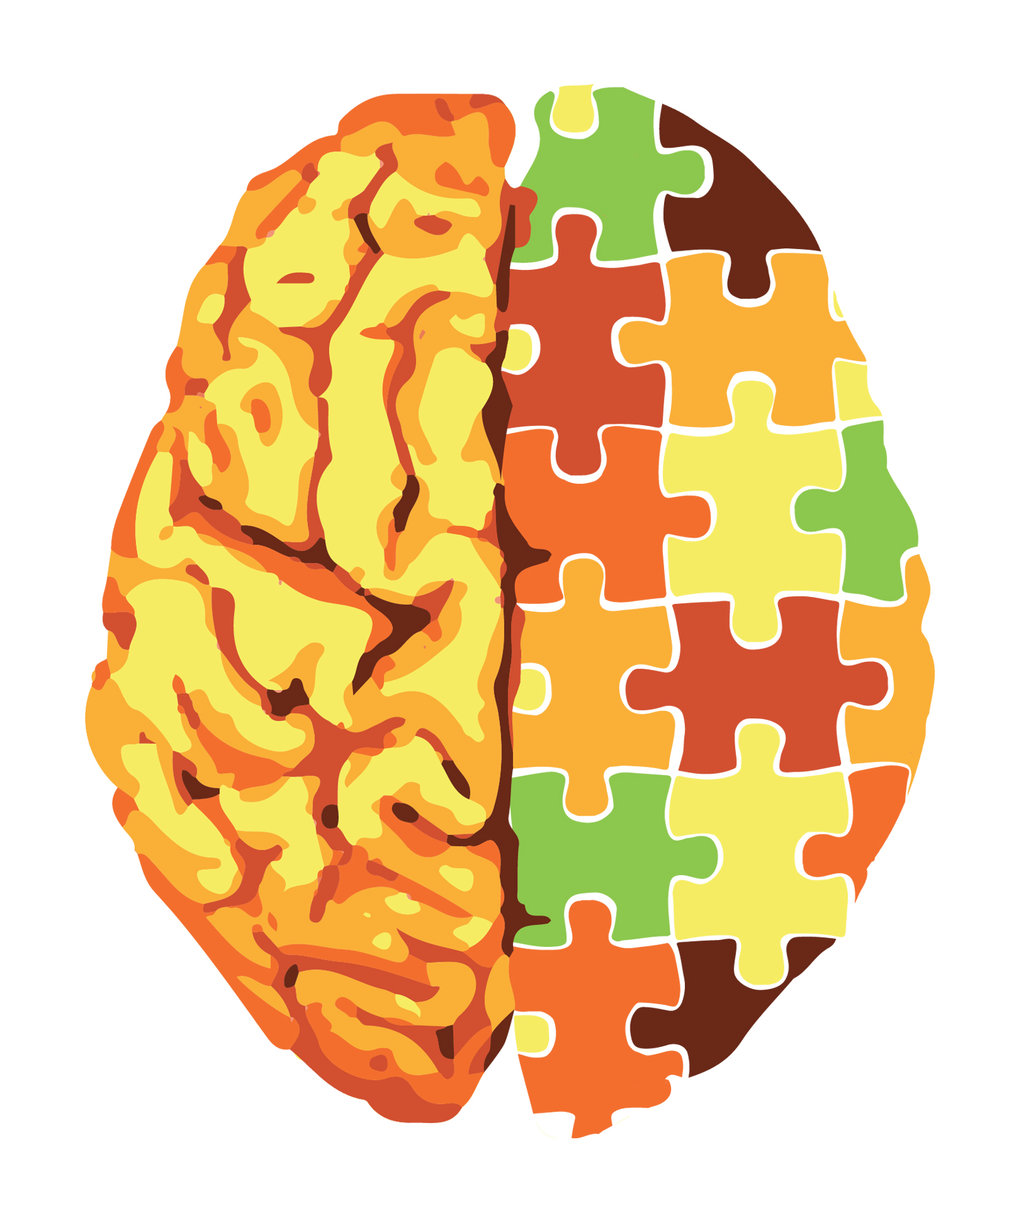 Symbolic image of a brain with a puzzle